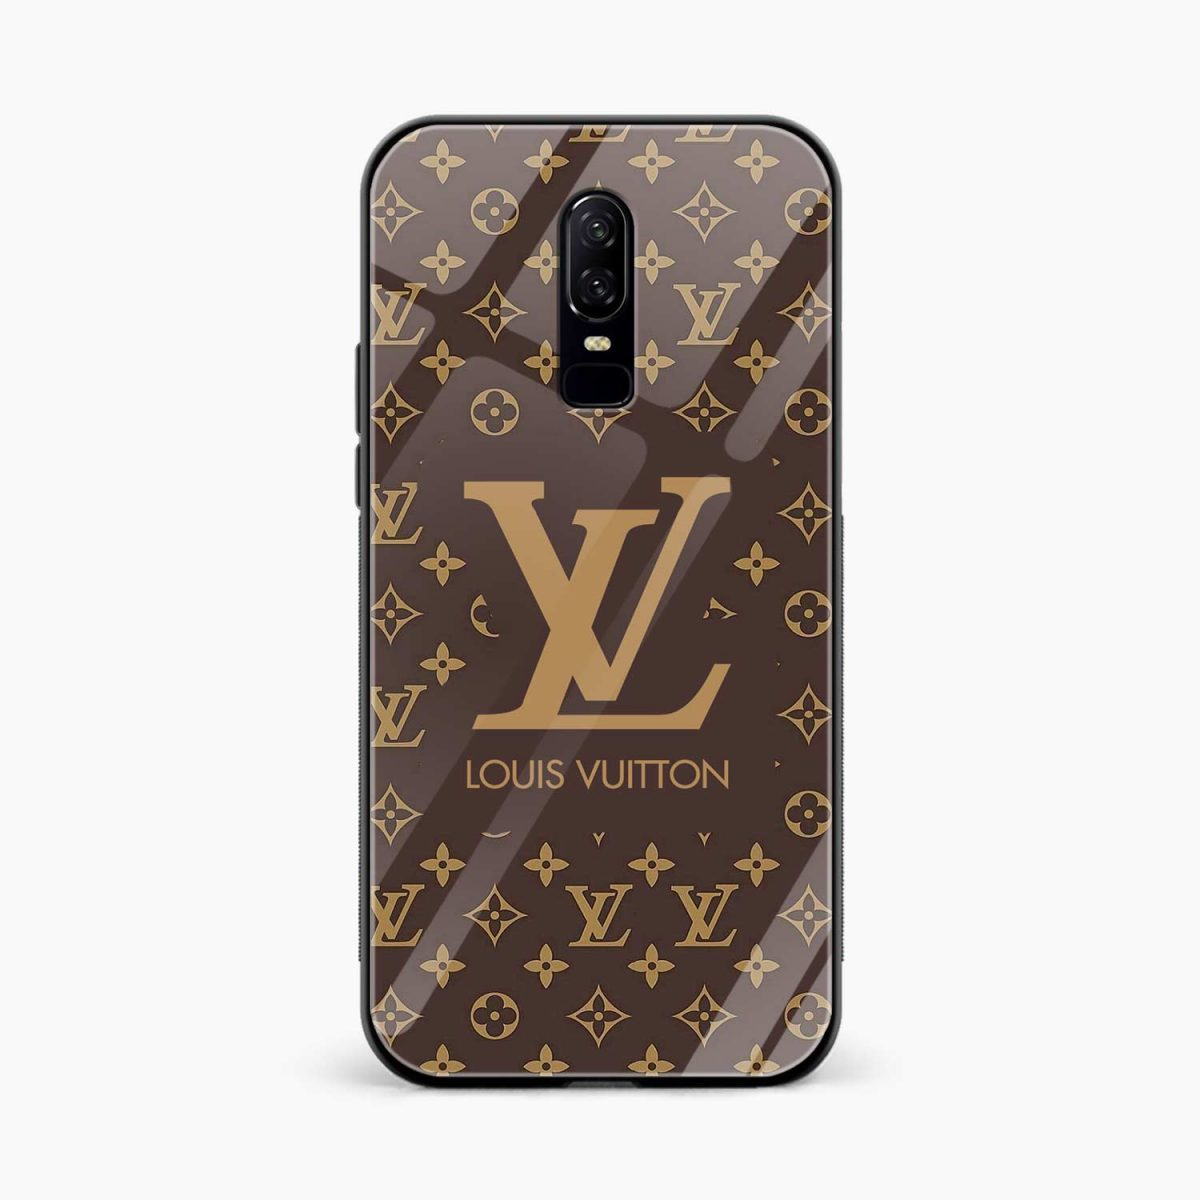 LOUIS VUITTON front view oneplus 6 back cover